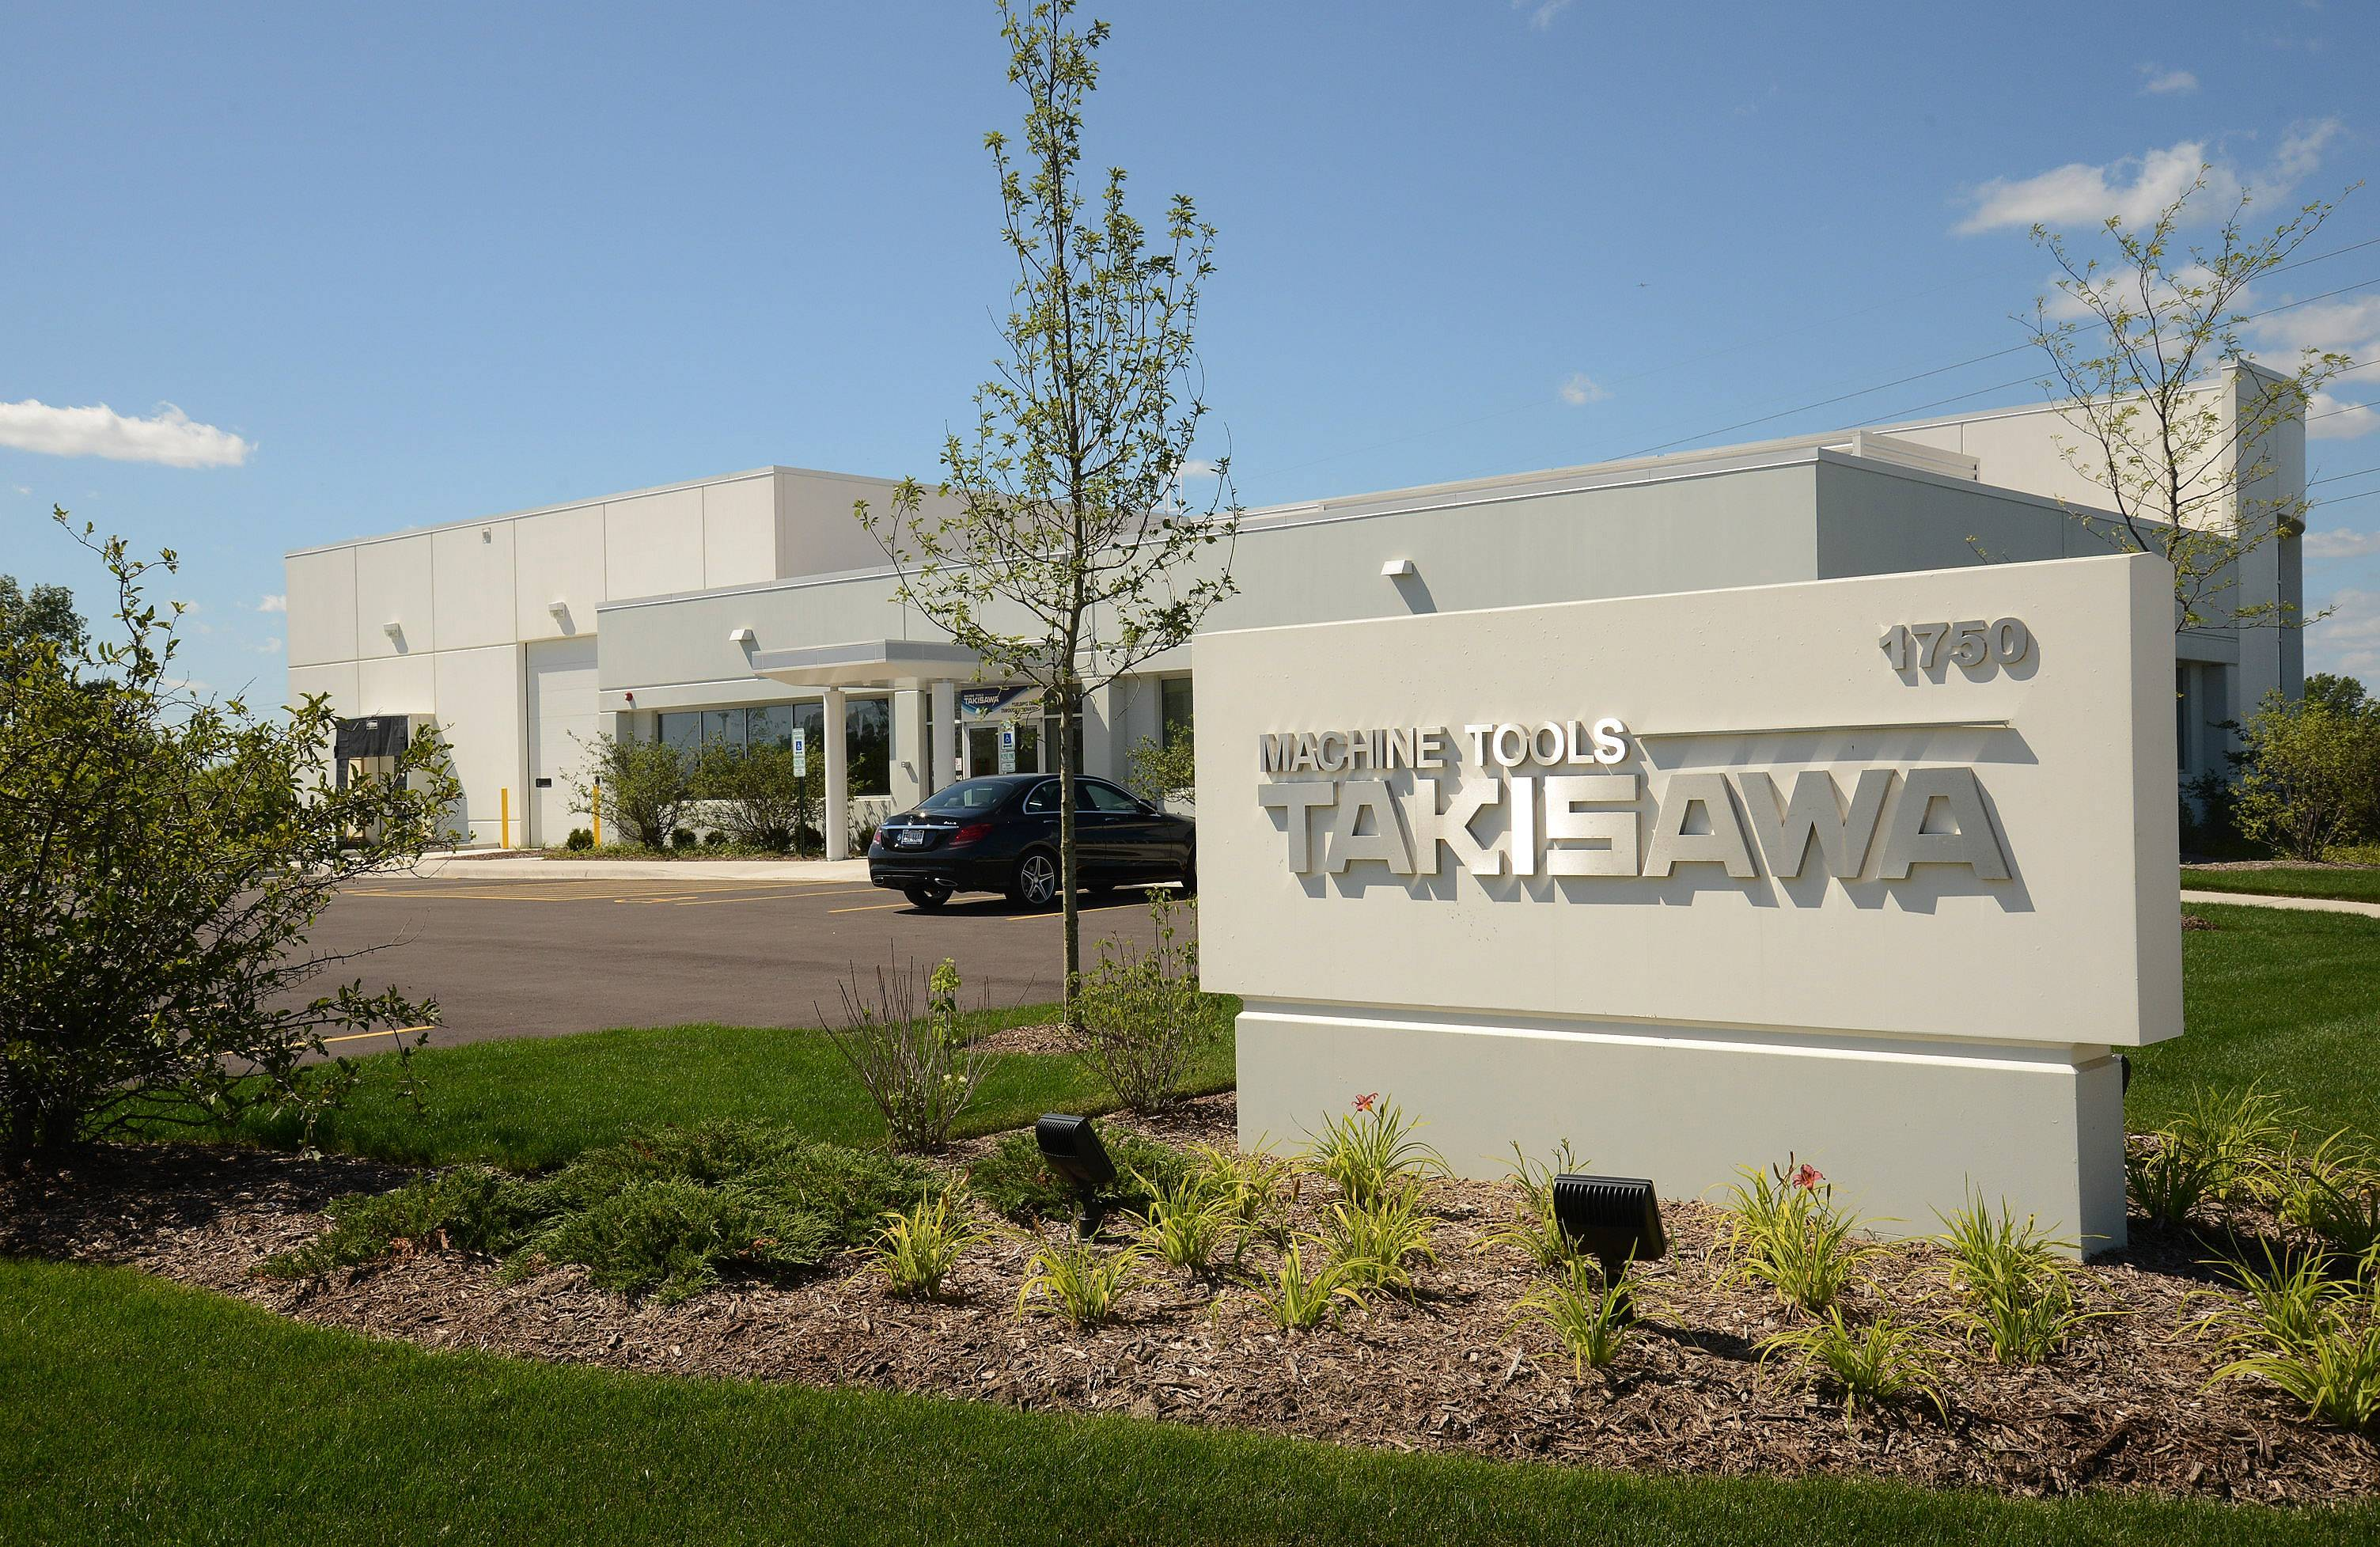 Takisawa Machine Tools is expanding in Schaumburg.